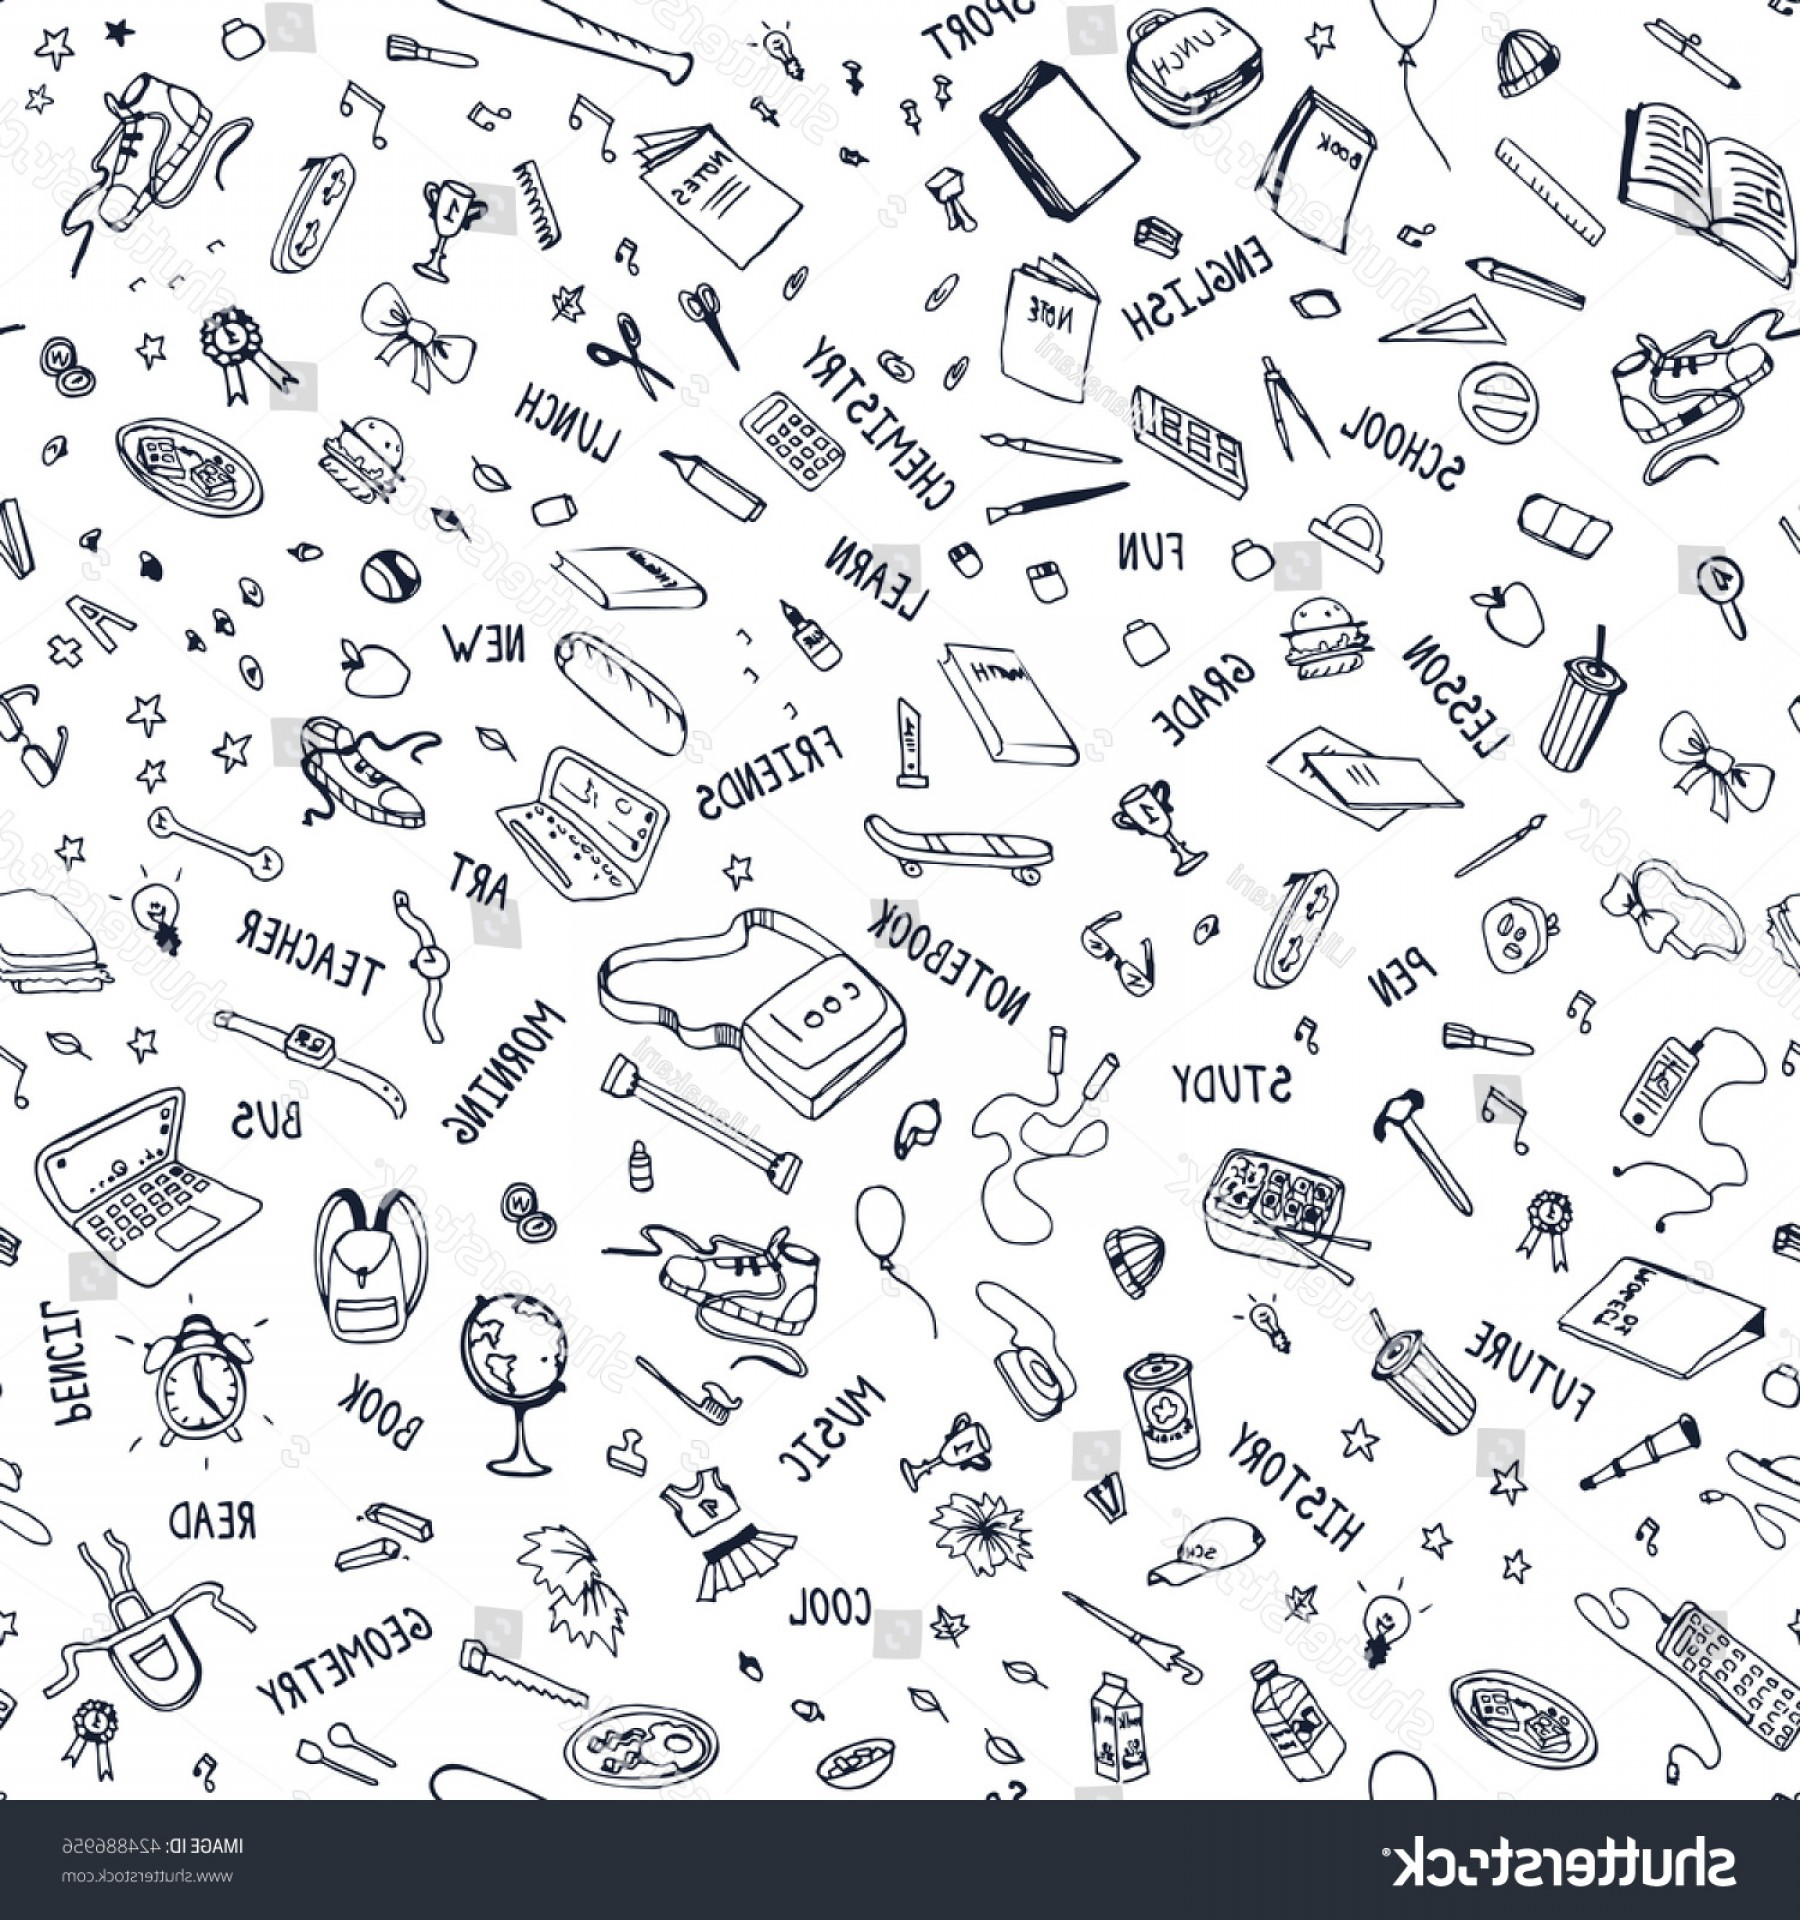 School Themed Vector: School Themed Seamless Pattern Items Doodle